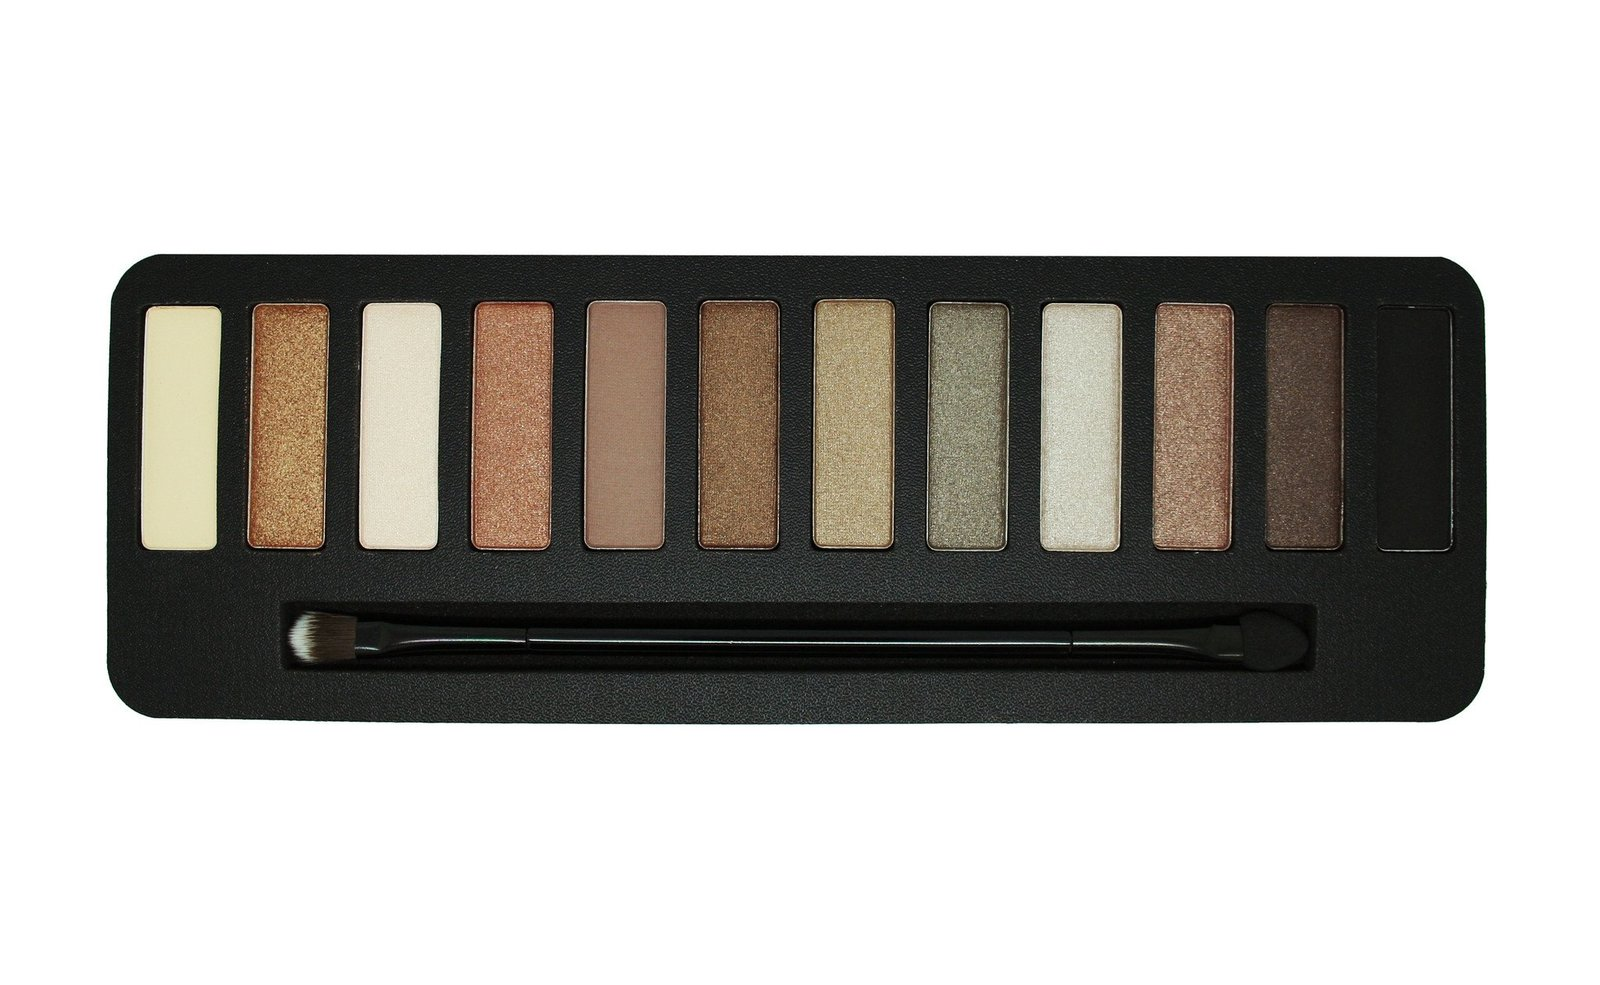 W7 Colour Me Buff Eyeshadow Palette image